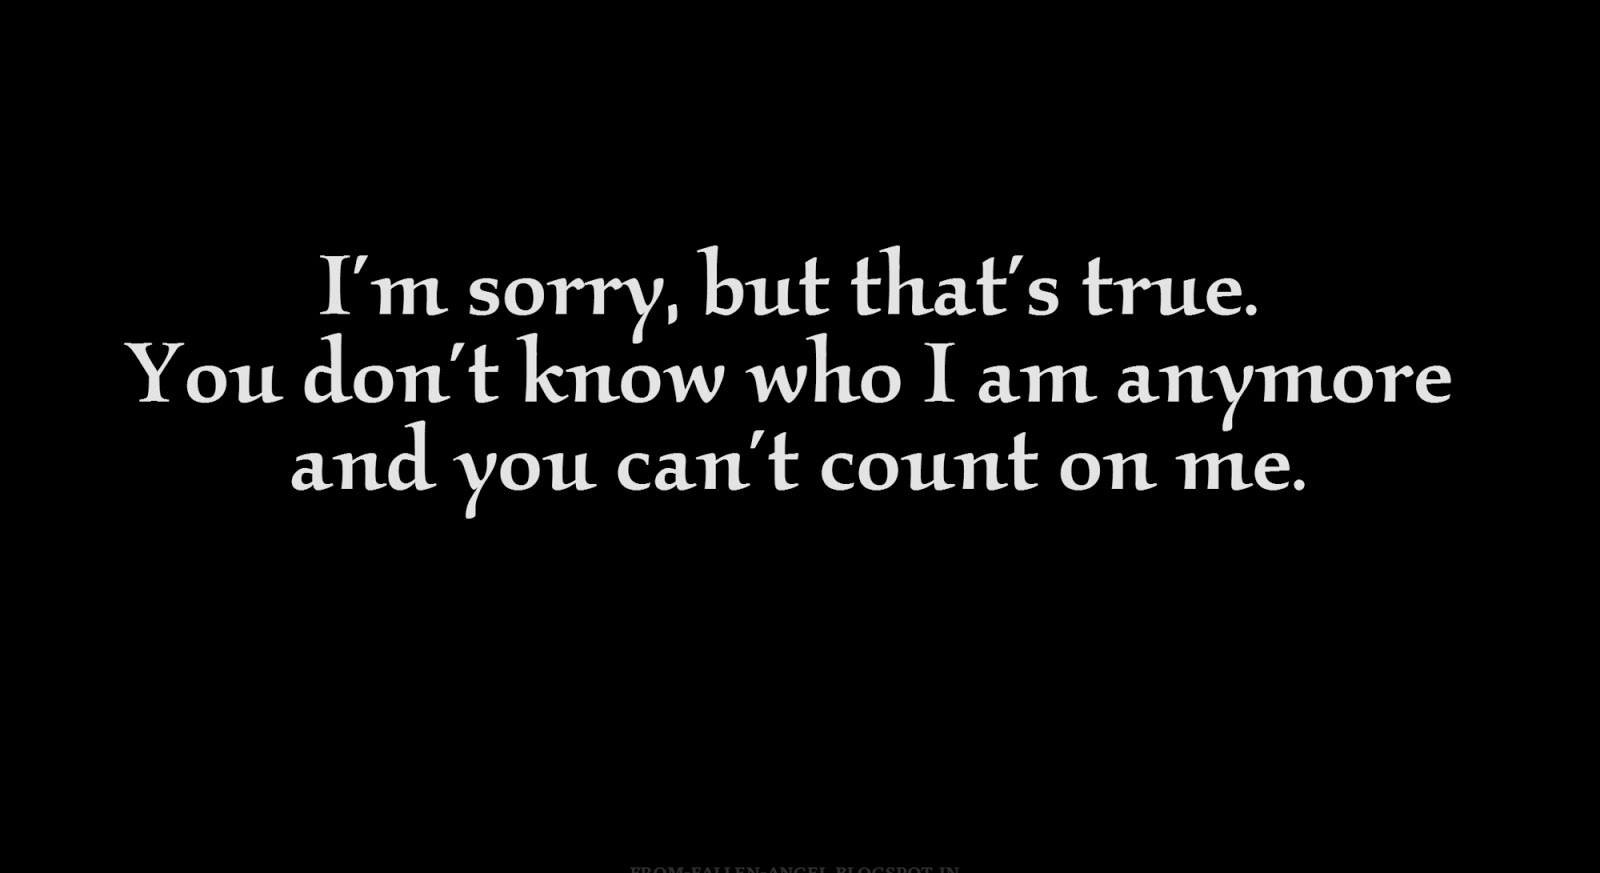 I'm sorry, but that's true. You don't know who I am anymore and you can't count on me.